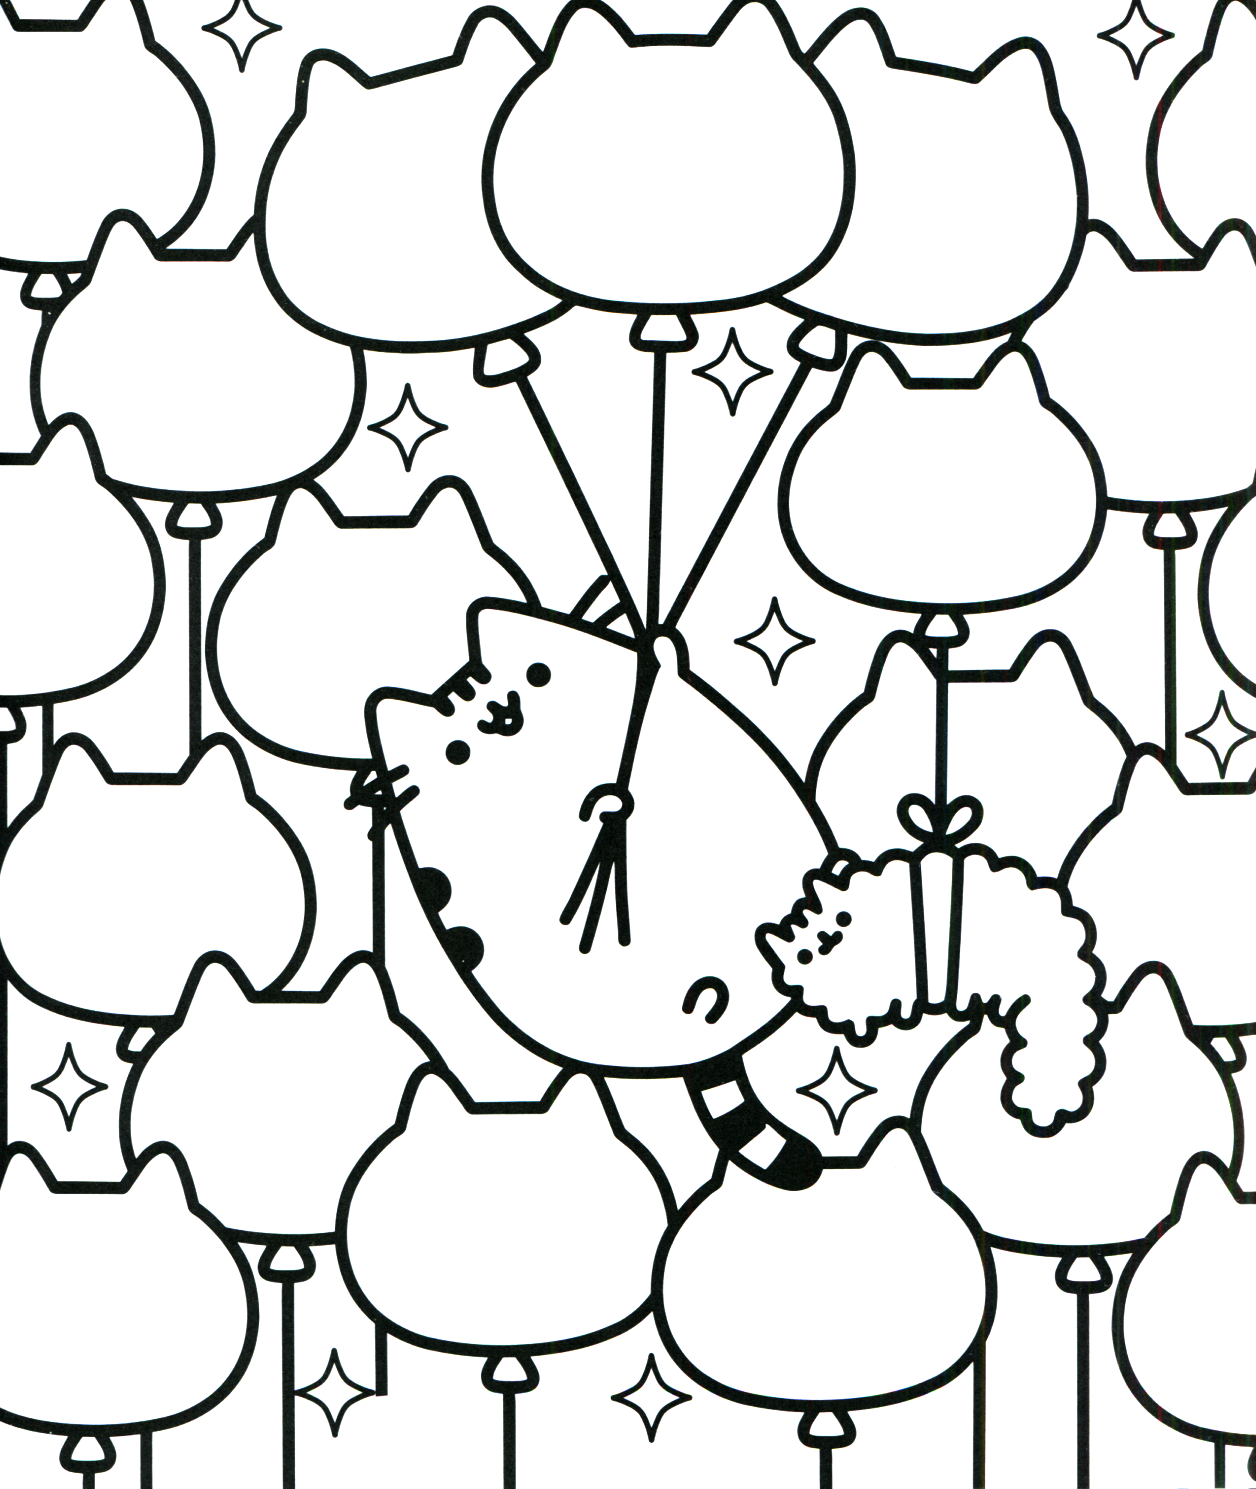 printable caterpillar coloring pages - pusheen coloring pages best coloring pages for kids